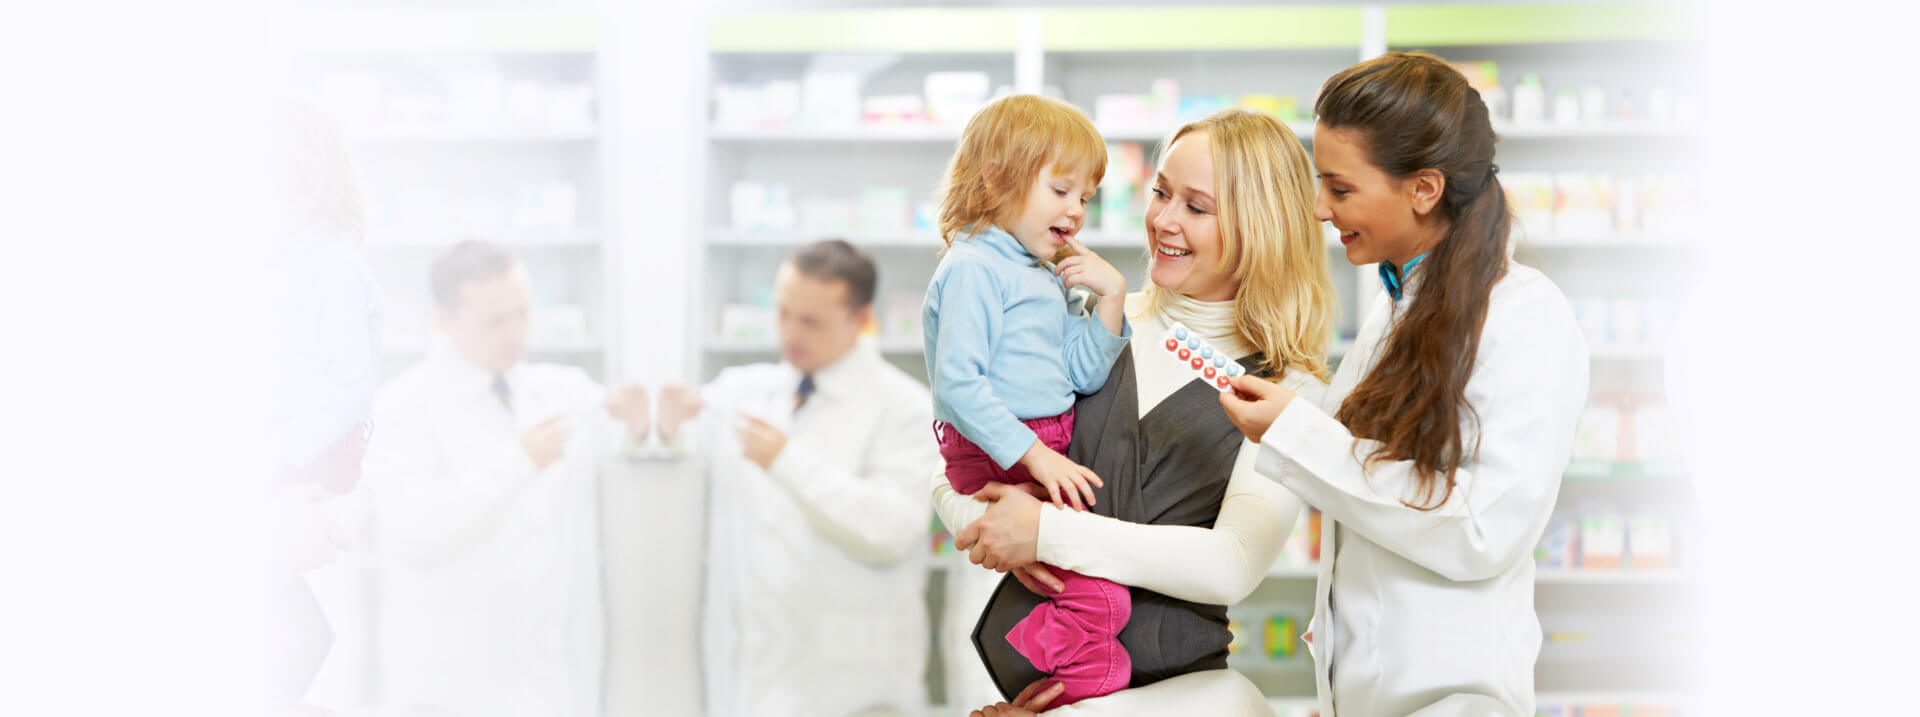 A pharmacist giving medicine to the child